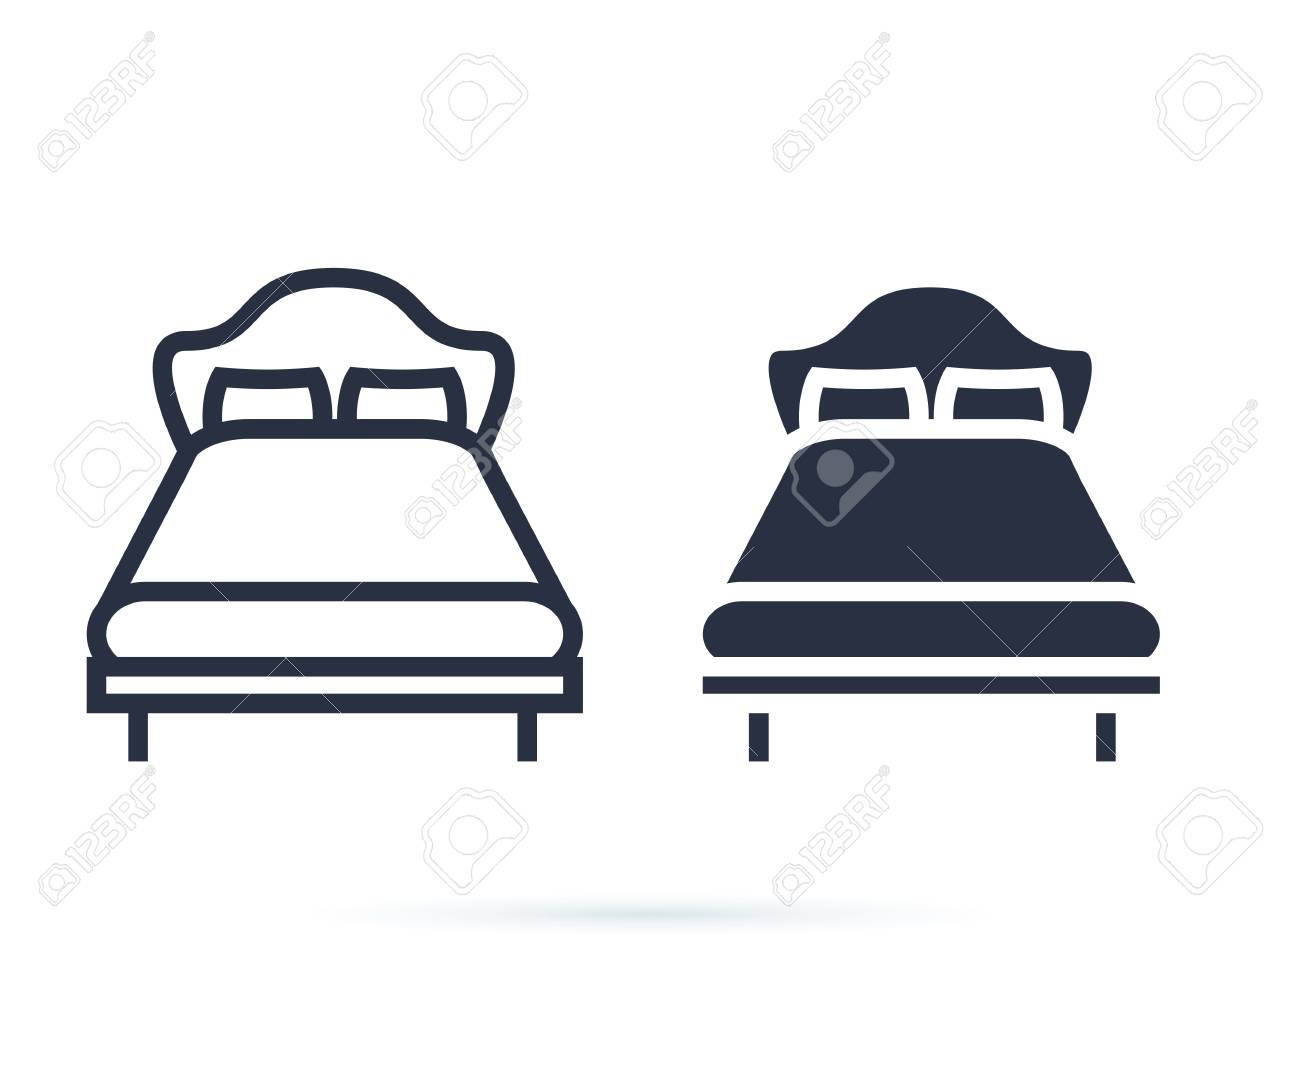 single bed. linear icon. Line and solid icons set for hotel, room. Double bed for couple, rest, hostel. Bed for two persons with a pillow and a blanket in a flat style. Isolated Vector illustration - 125498782